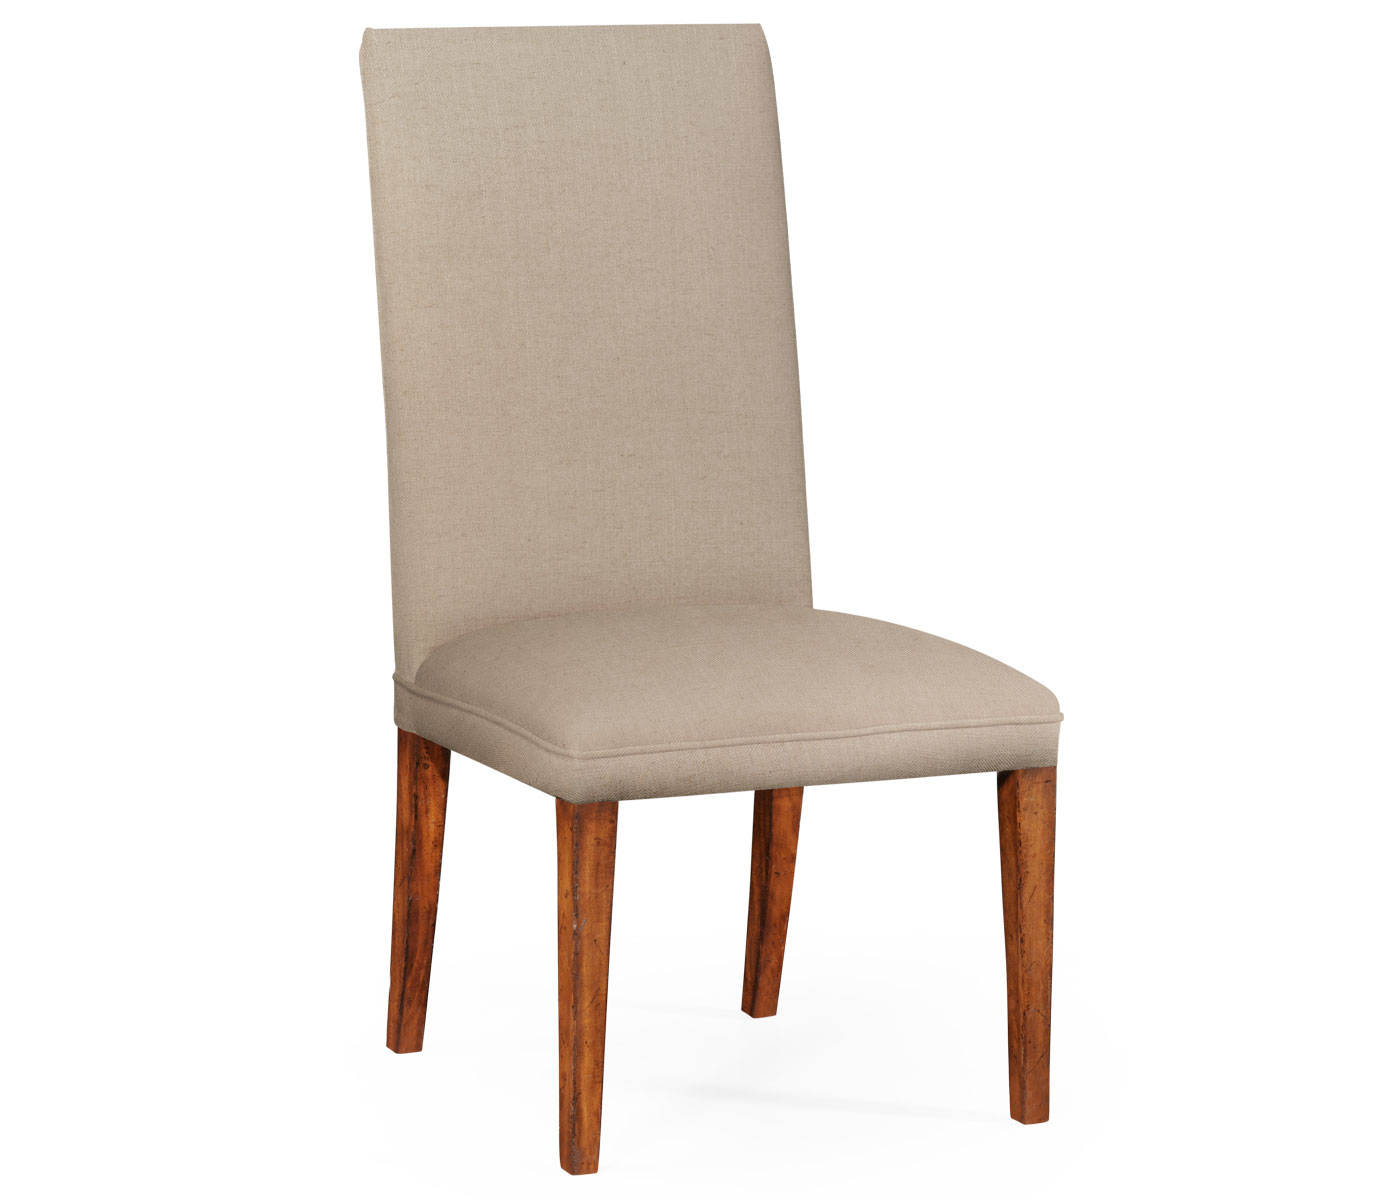 cloth dining room chairs rebar chair sizes fully upholstered side